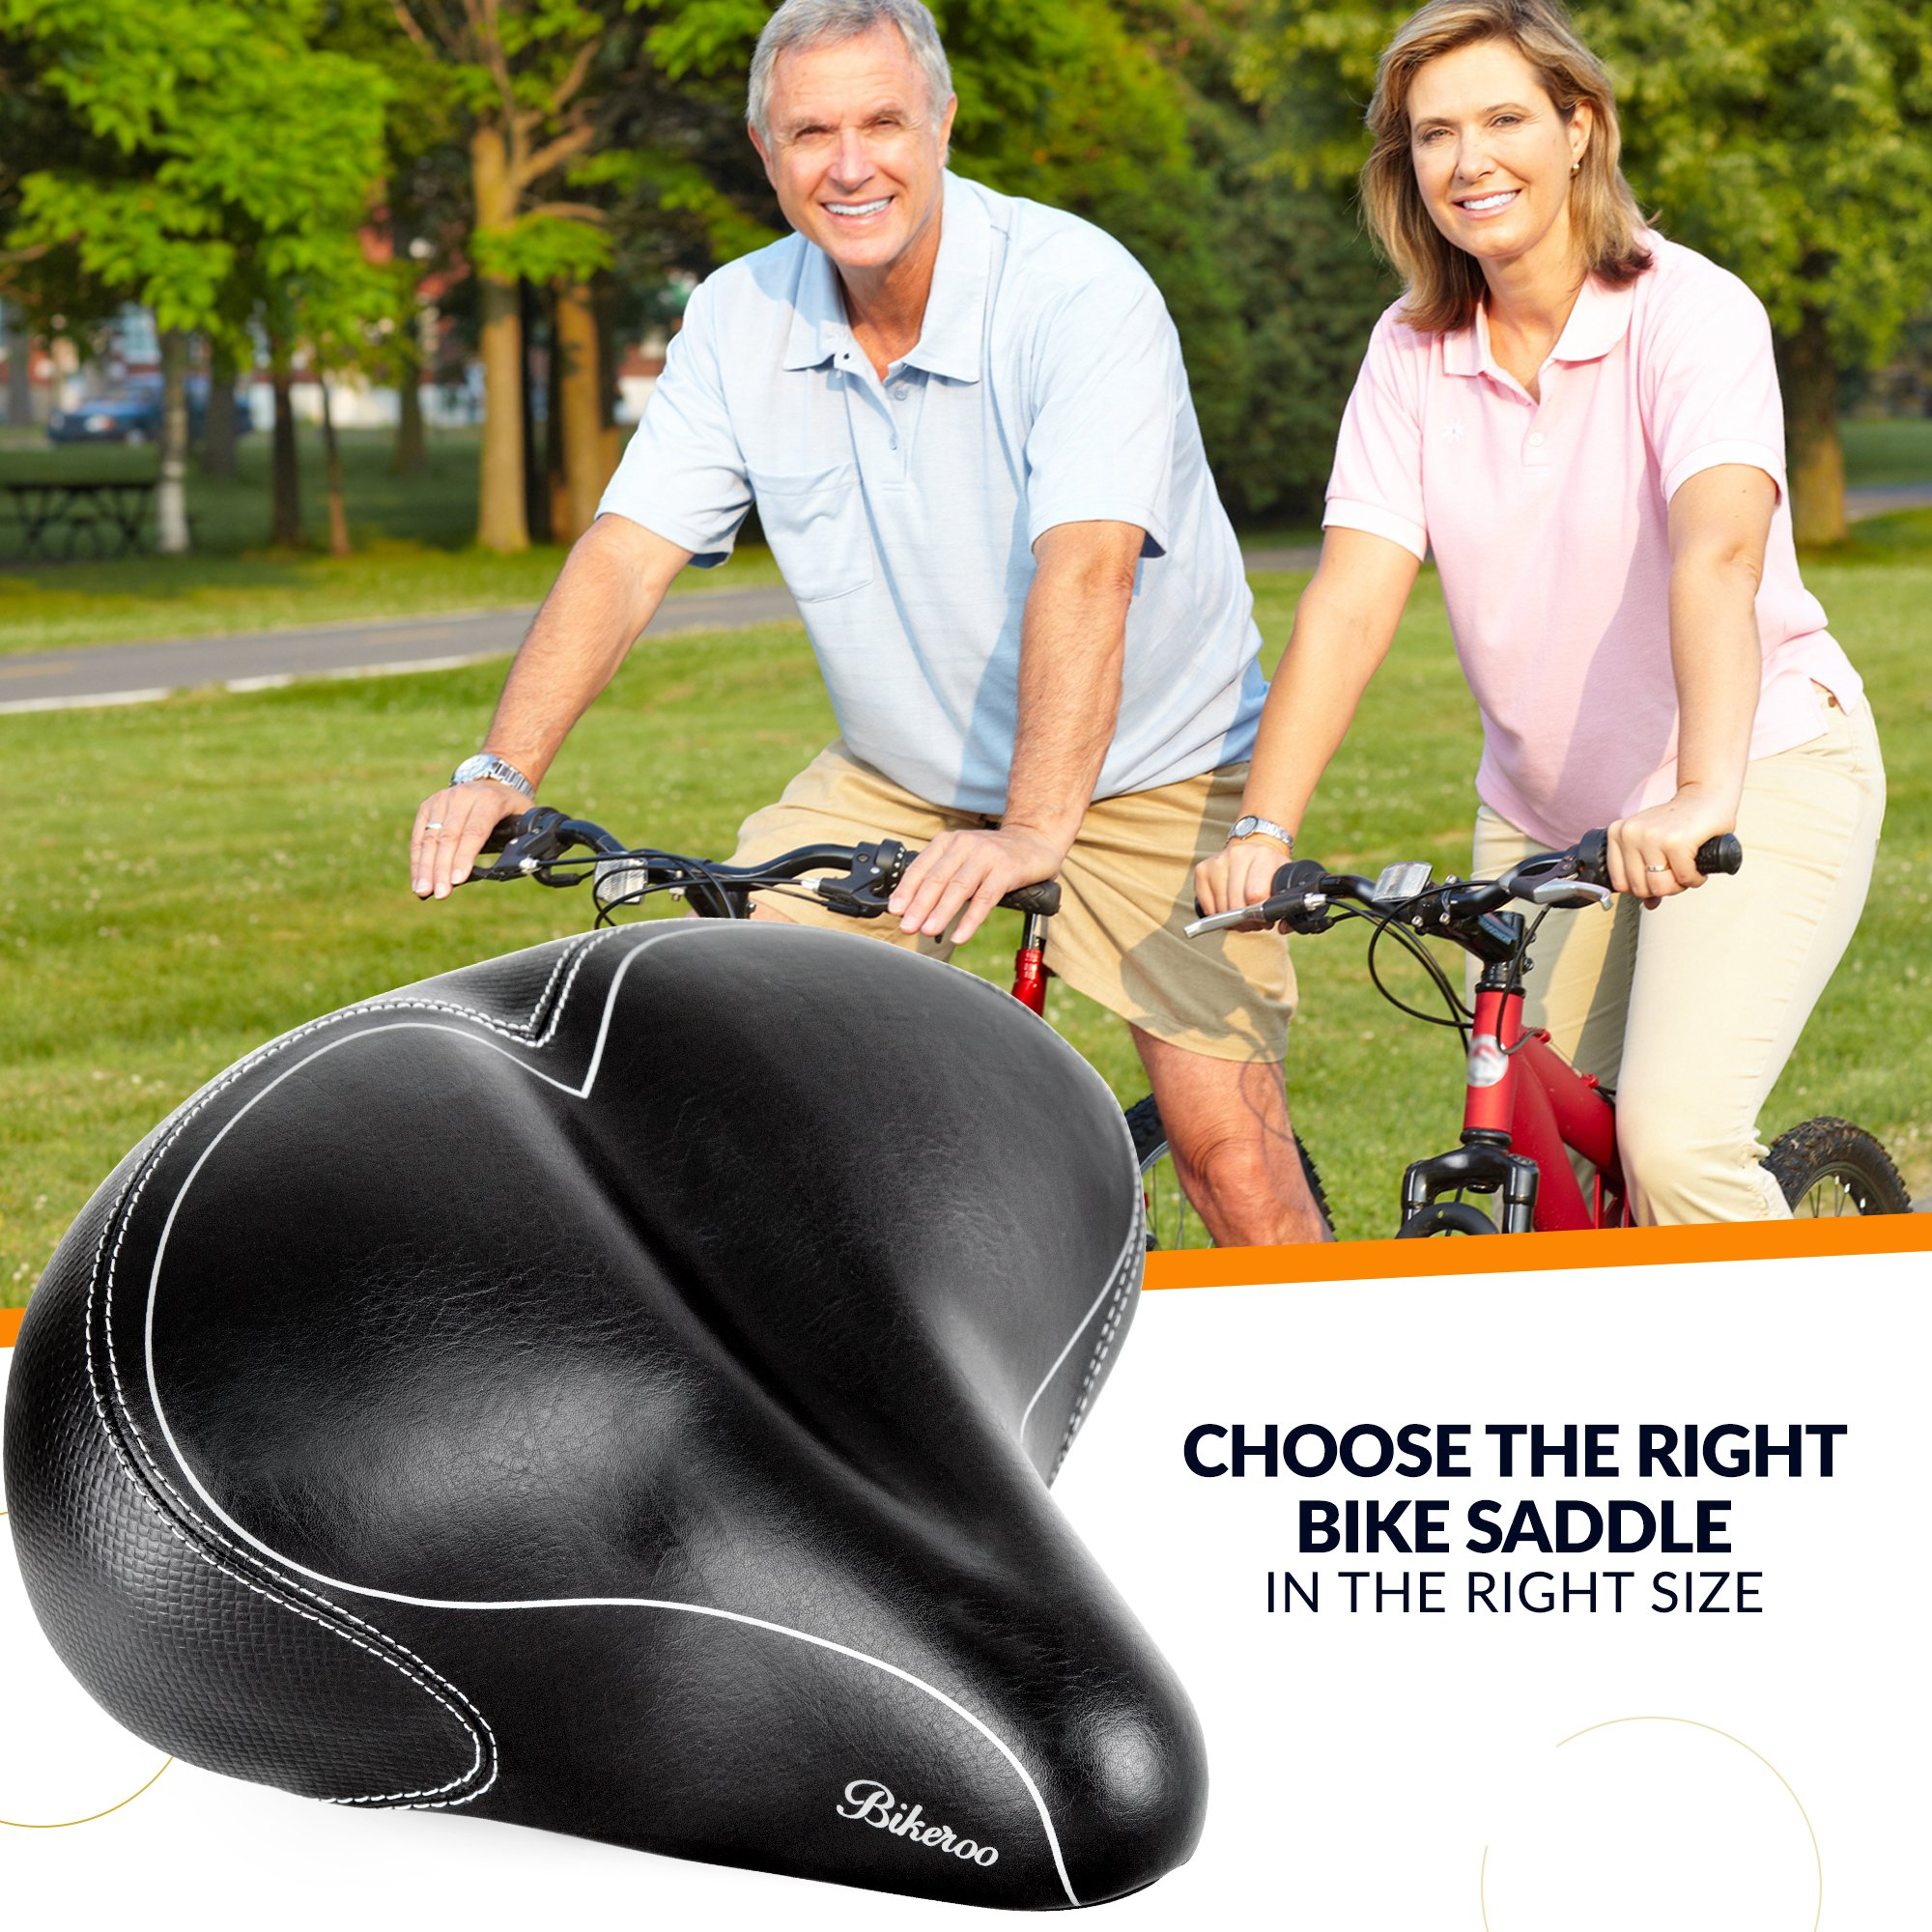 Bikeroo Oversized Comfort Bike Seat Most Comfortable Replacement Bicycle Saddle - Universal Fit for Exercise Bike and Outdoor Bikes - Wide Soft Padded Bike Saddle for Women and Men by Bikeroo (Image #9)